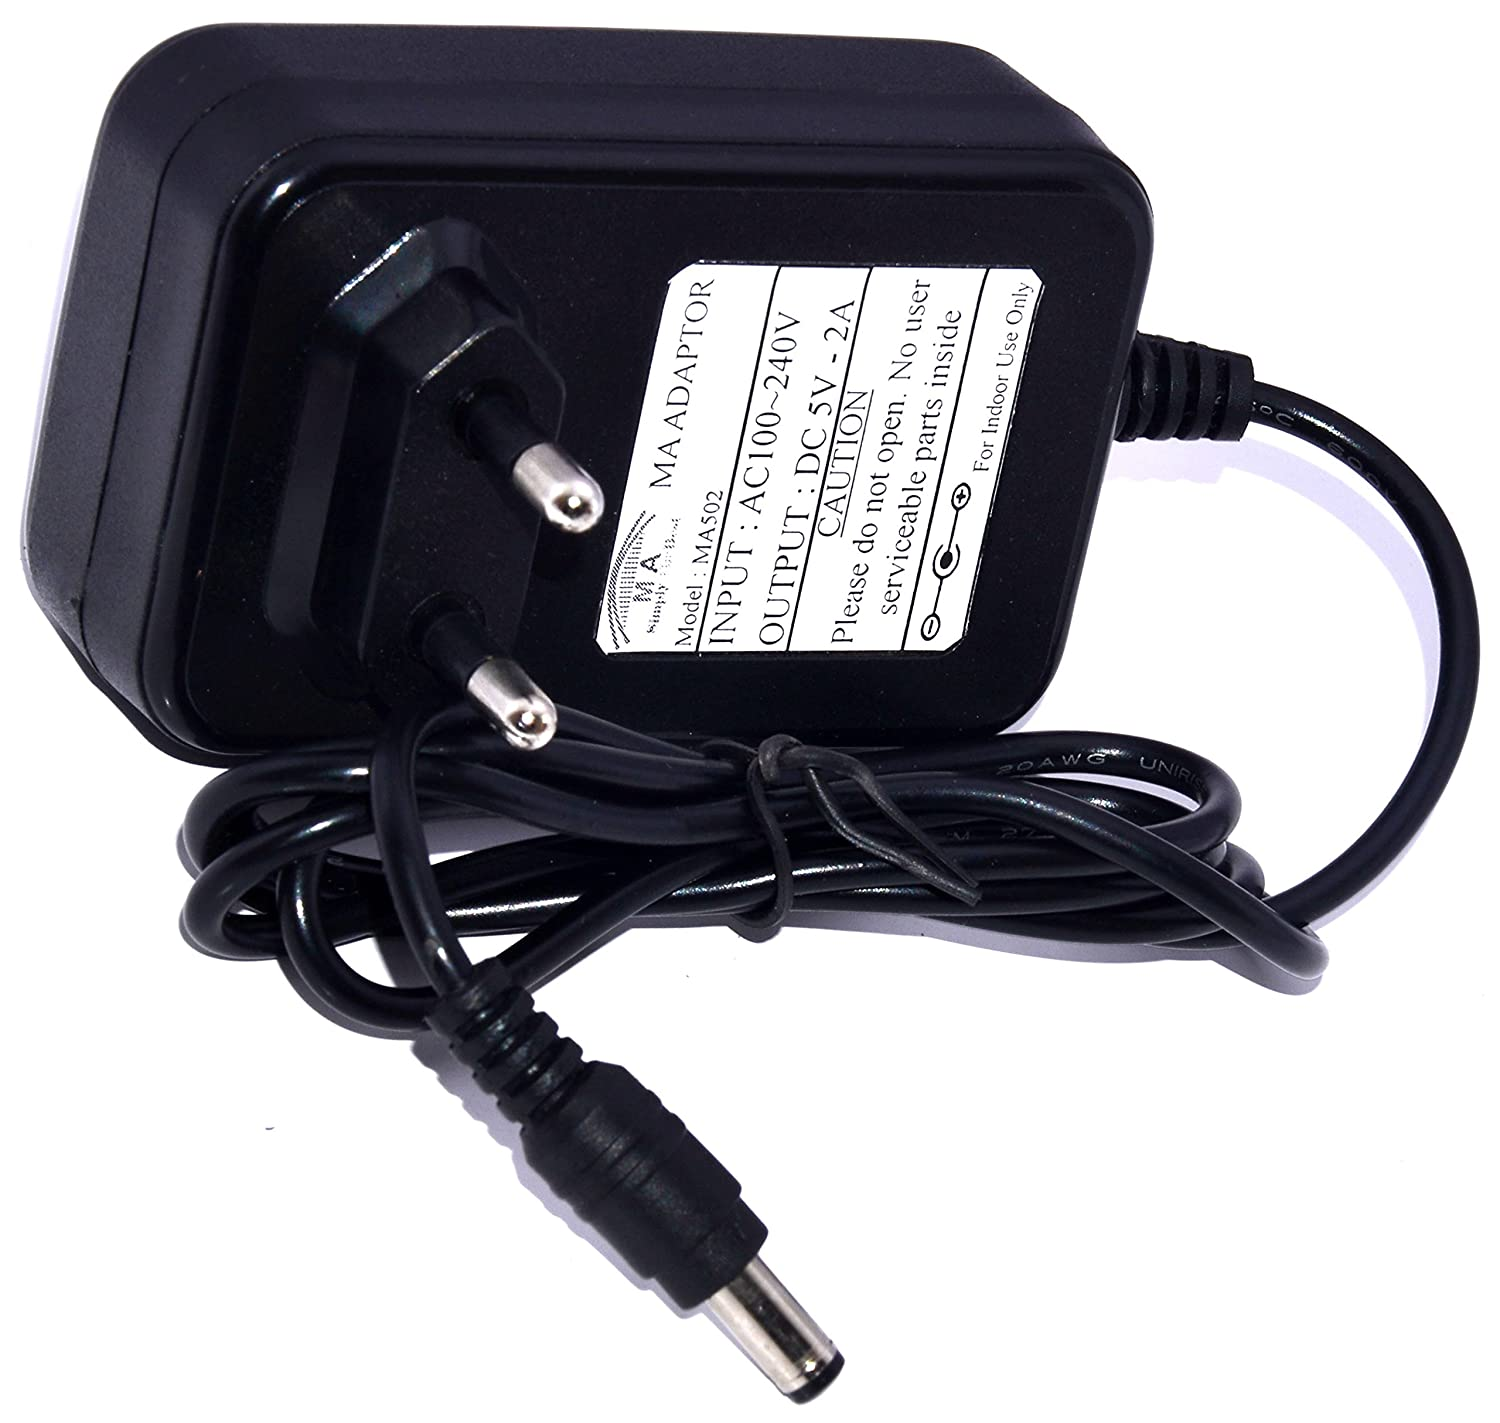 Buy Ma Dc 5v 2a Power Adaptor For Arduino Board Router Modem And Other Online At Low Prices In India